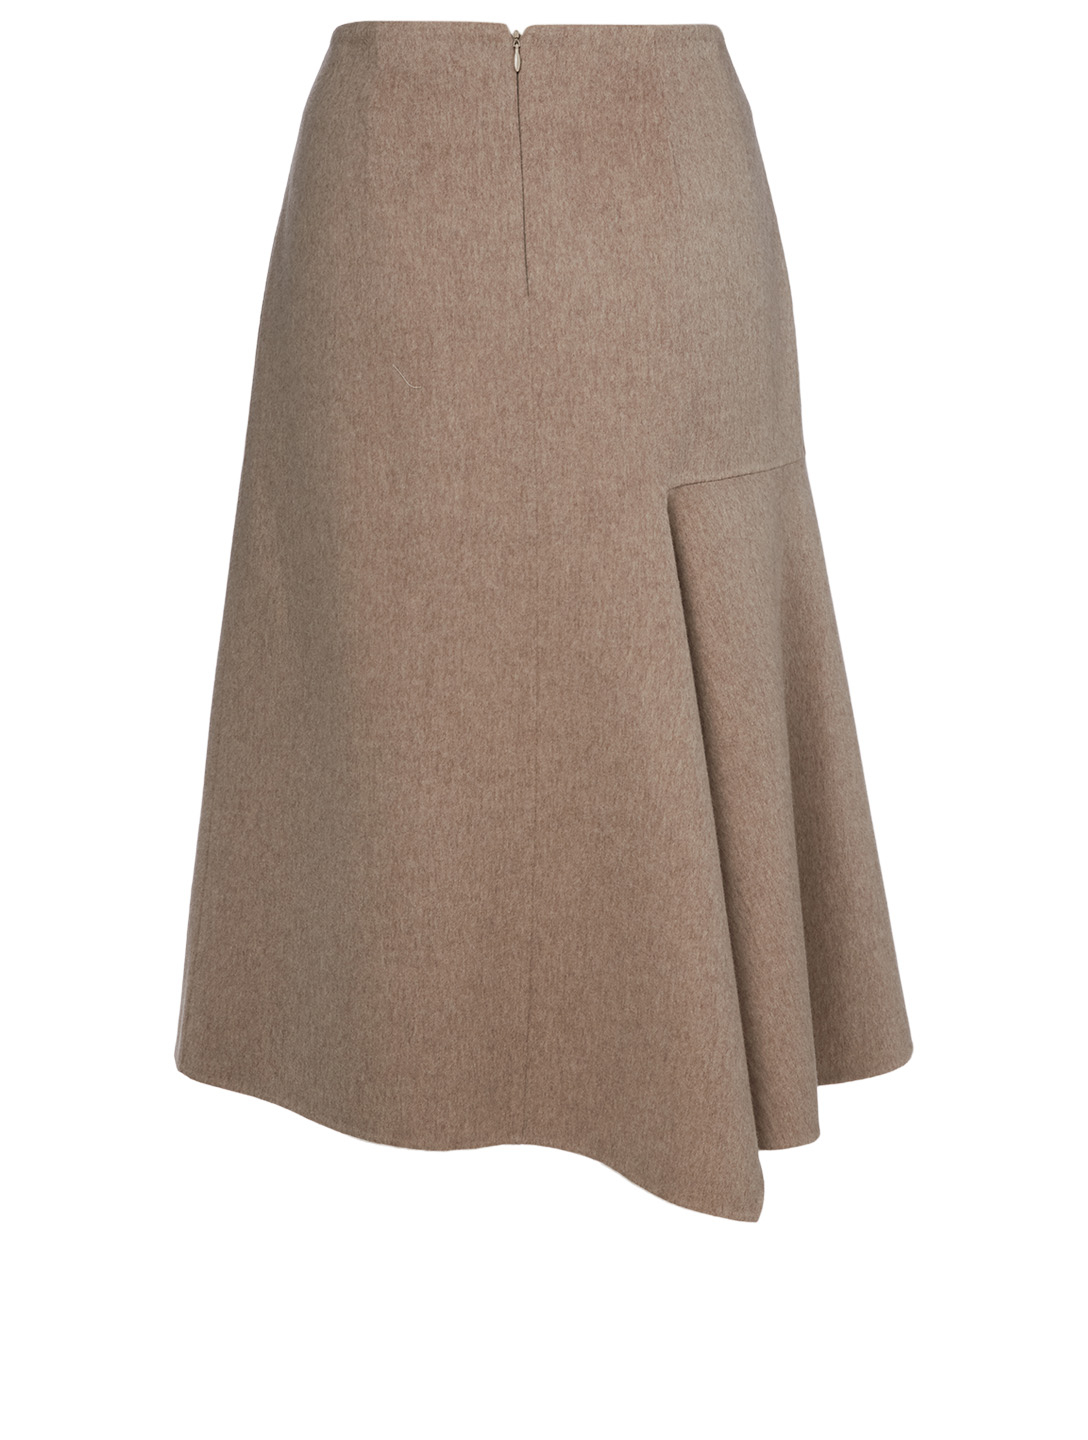 KUHO Wool And Cashmere Asymmetric Skirt Women's Neutral